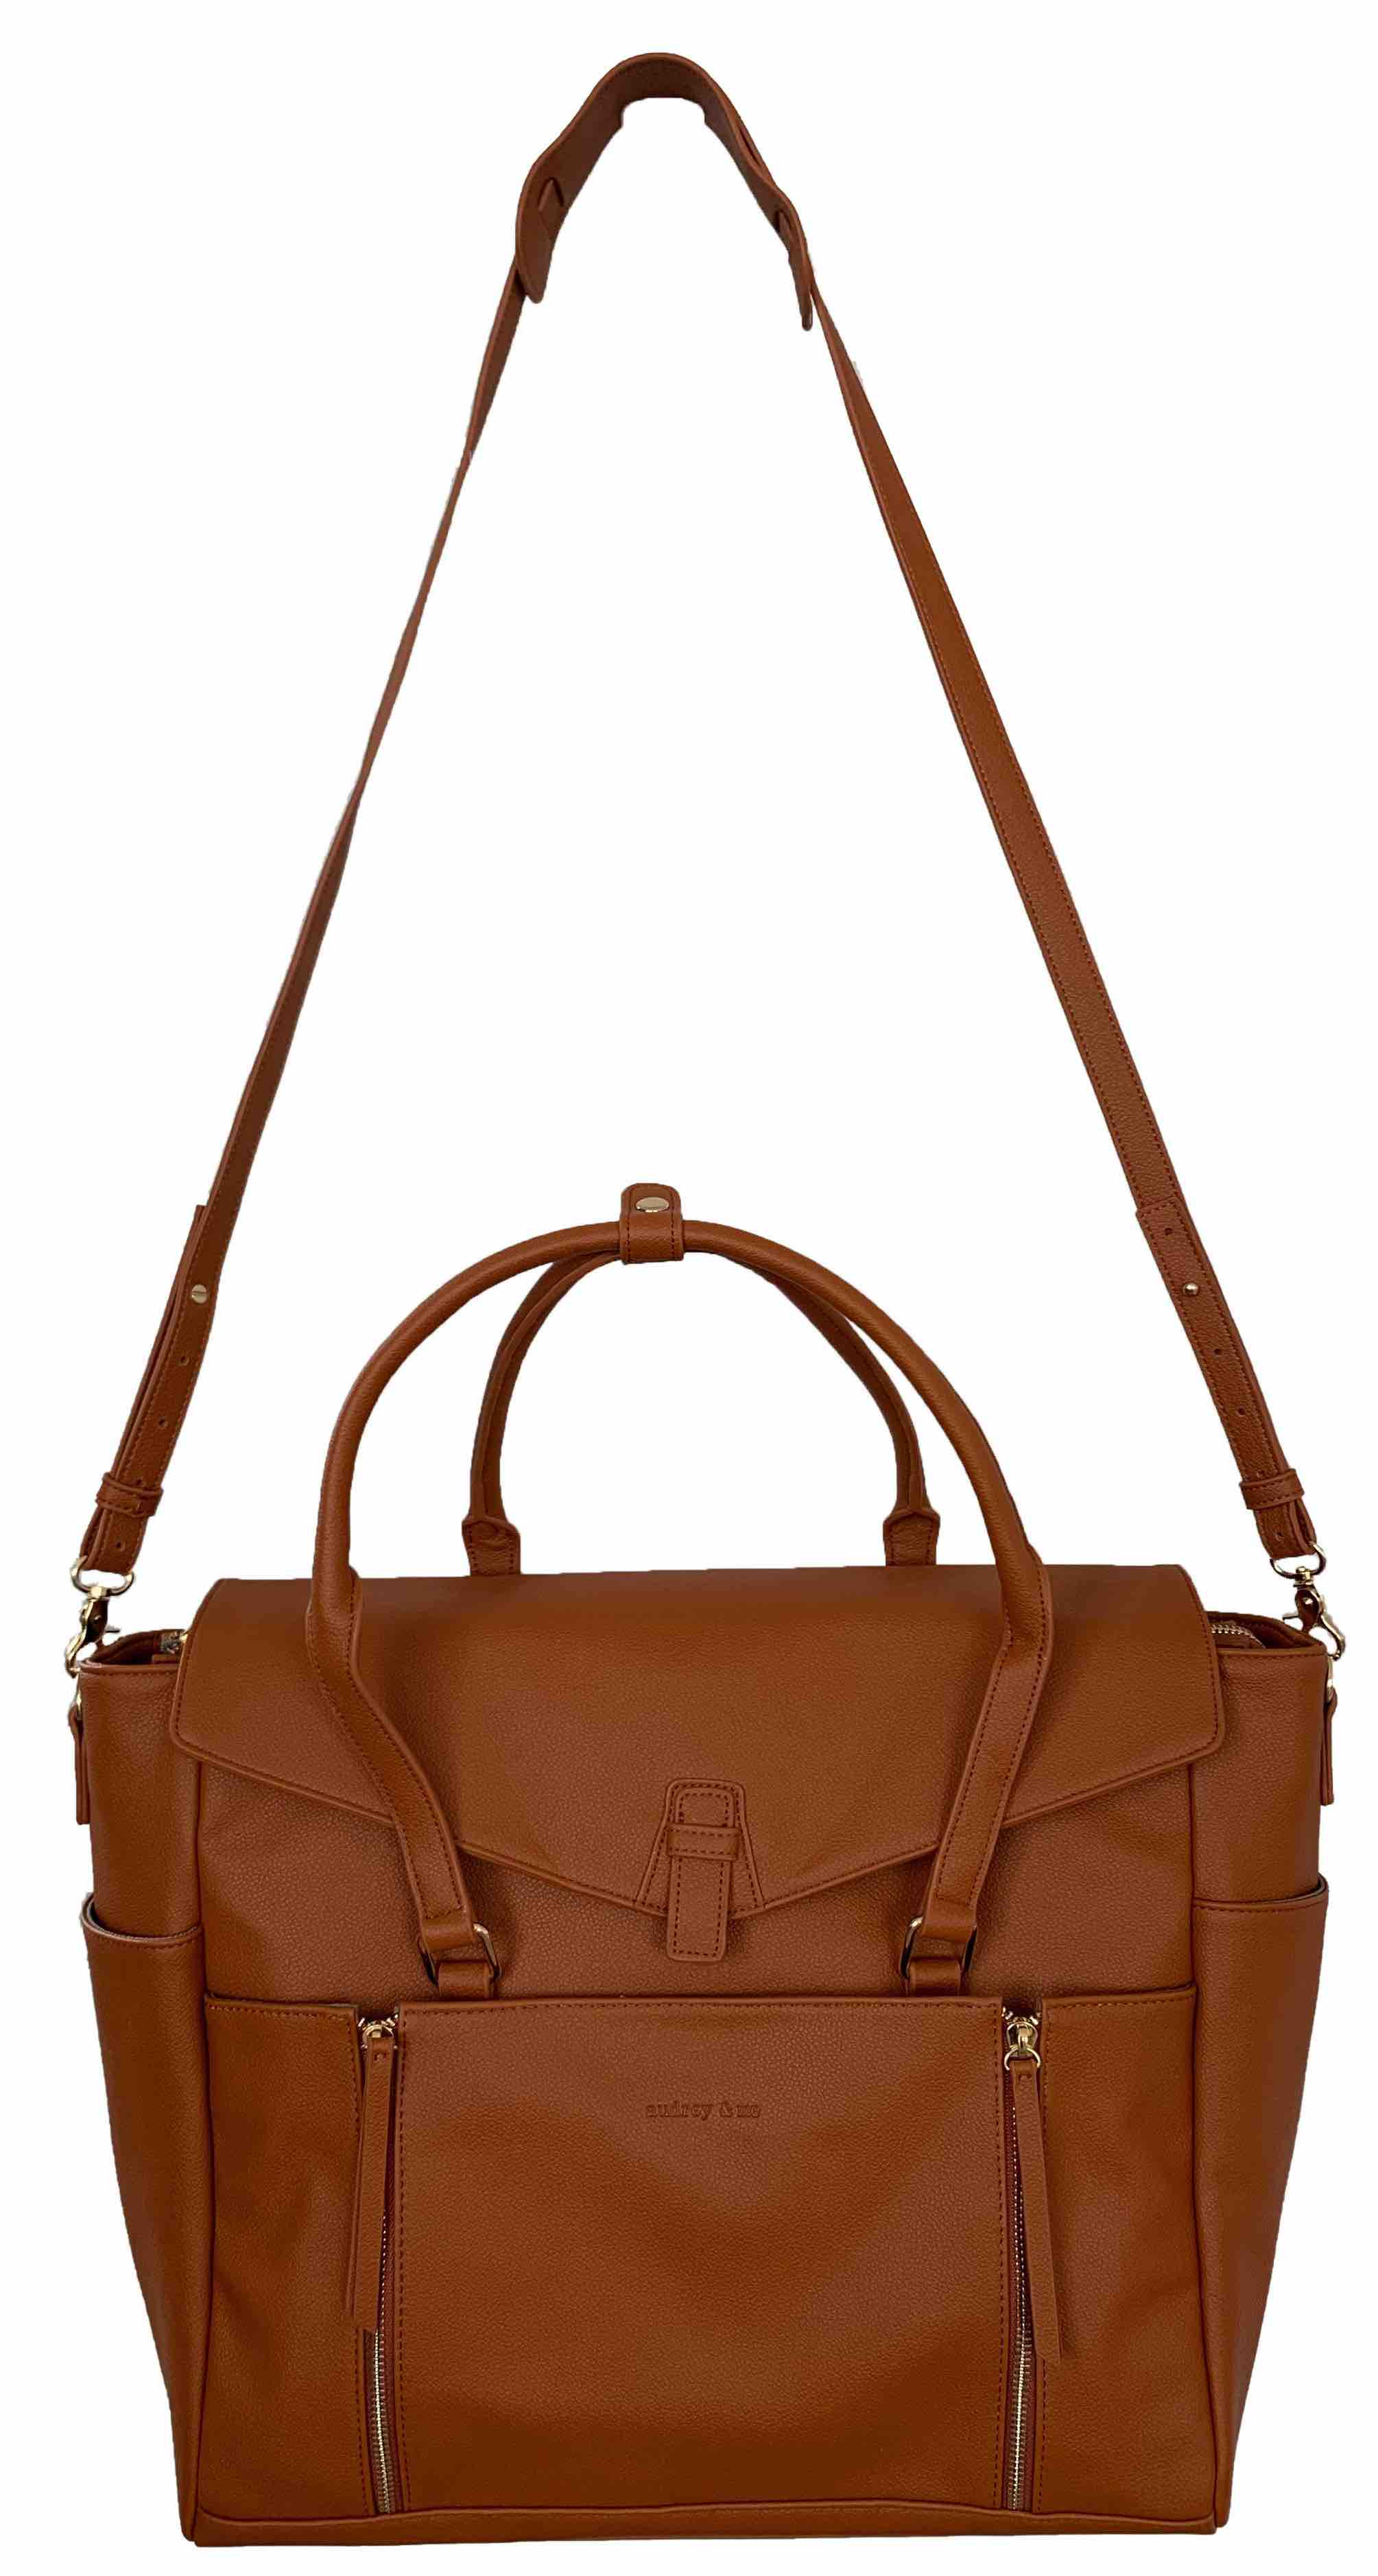 The Adapt Nappy Bag - Tan - PRE ORDER